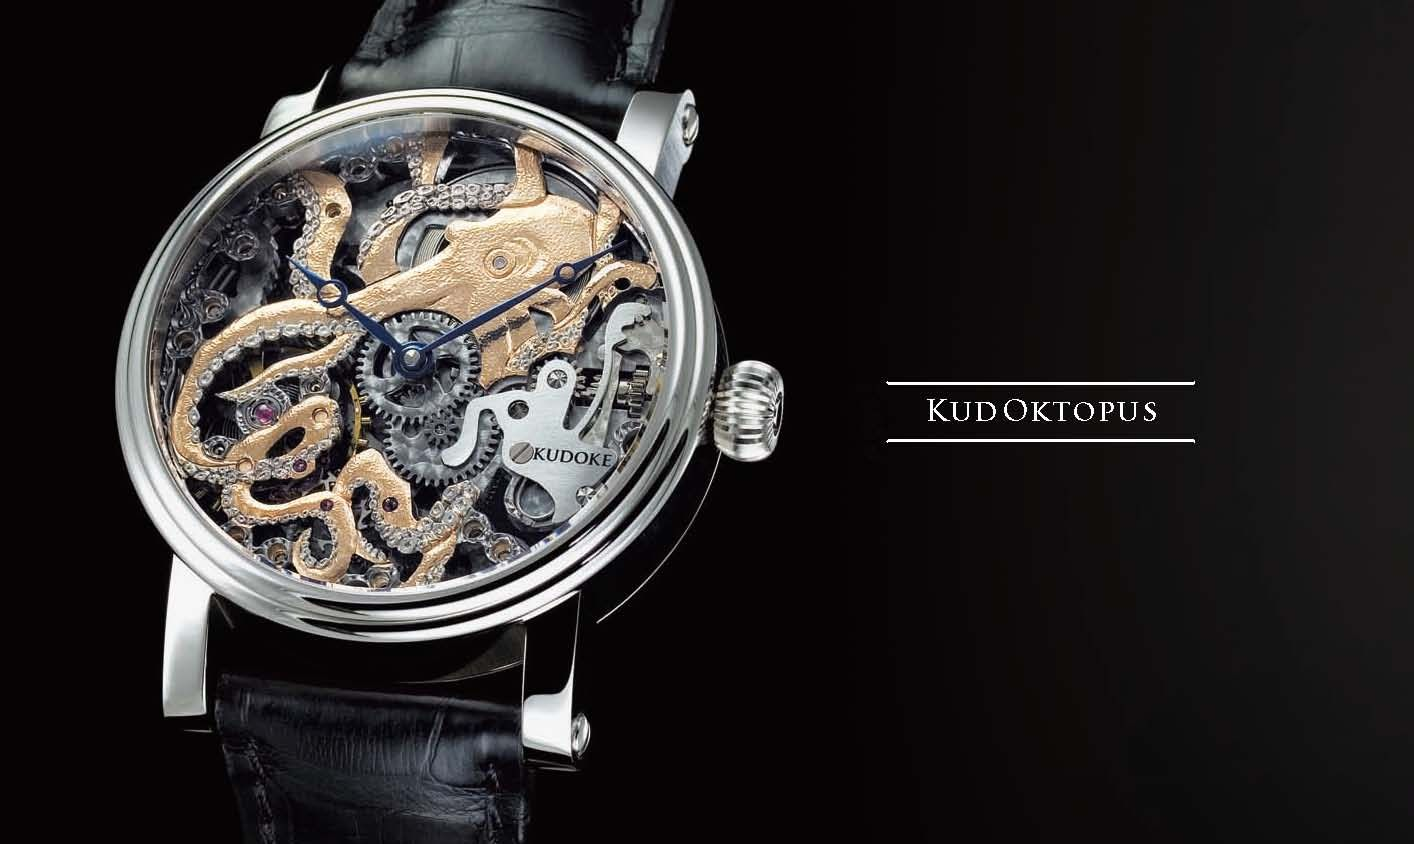 KudOktopus - KUDOKE - The Master of Skeleton Watches - Independent Watchmaker - Handmade in Germany